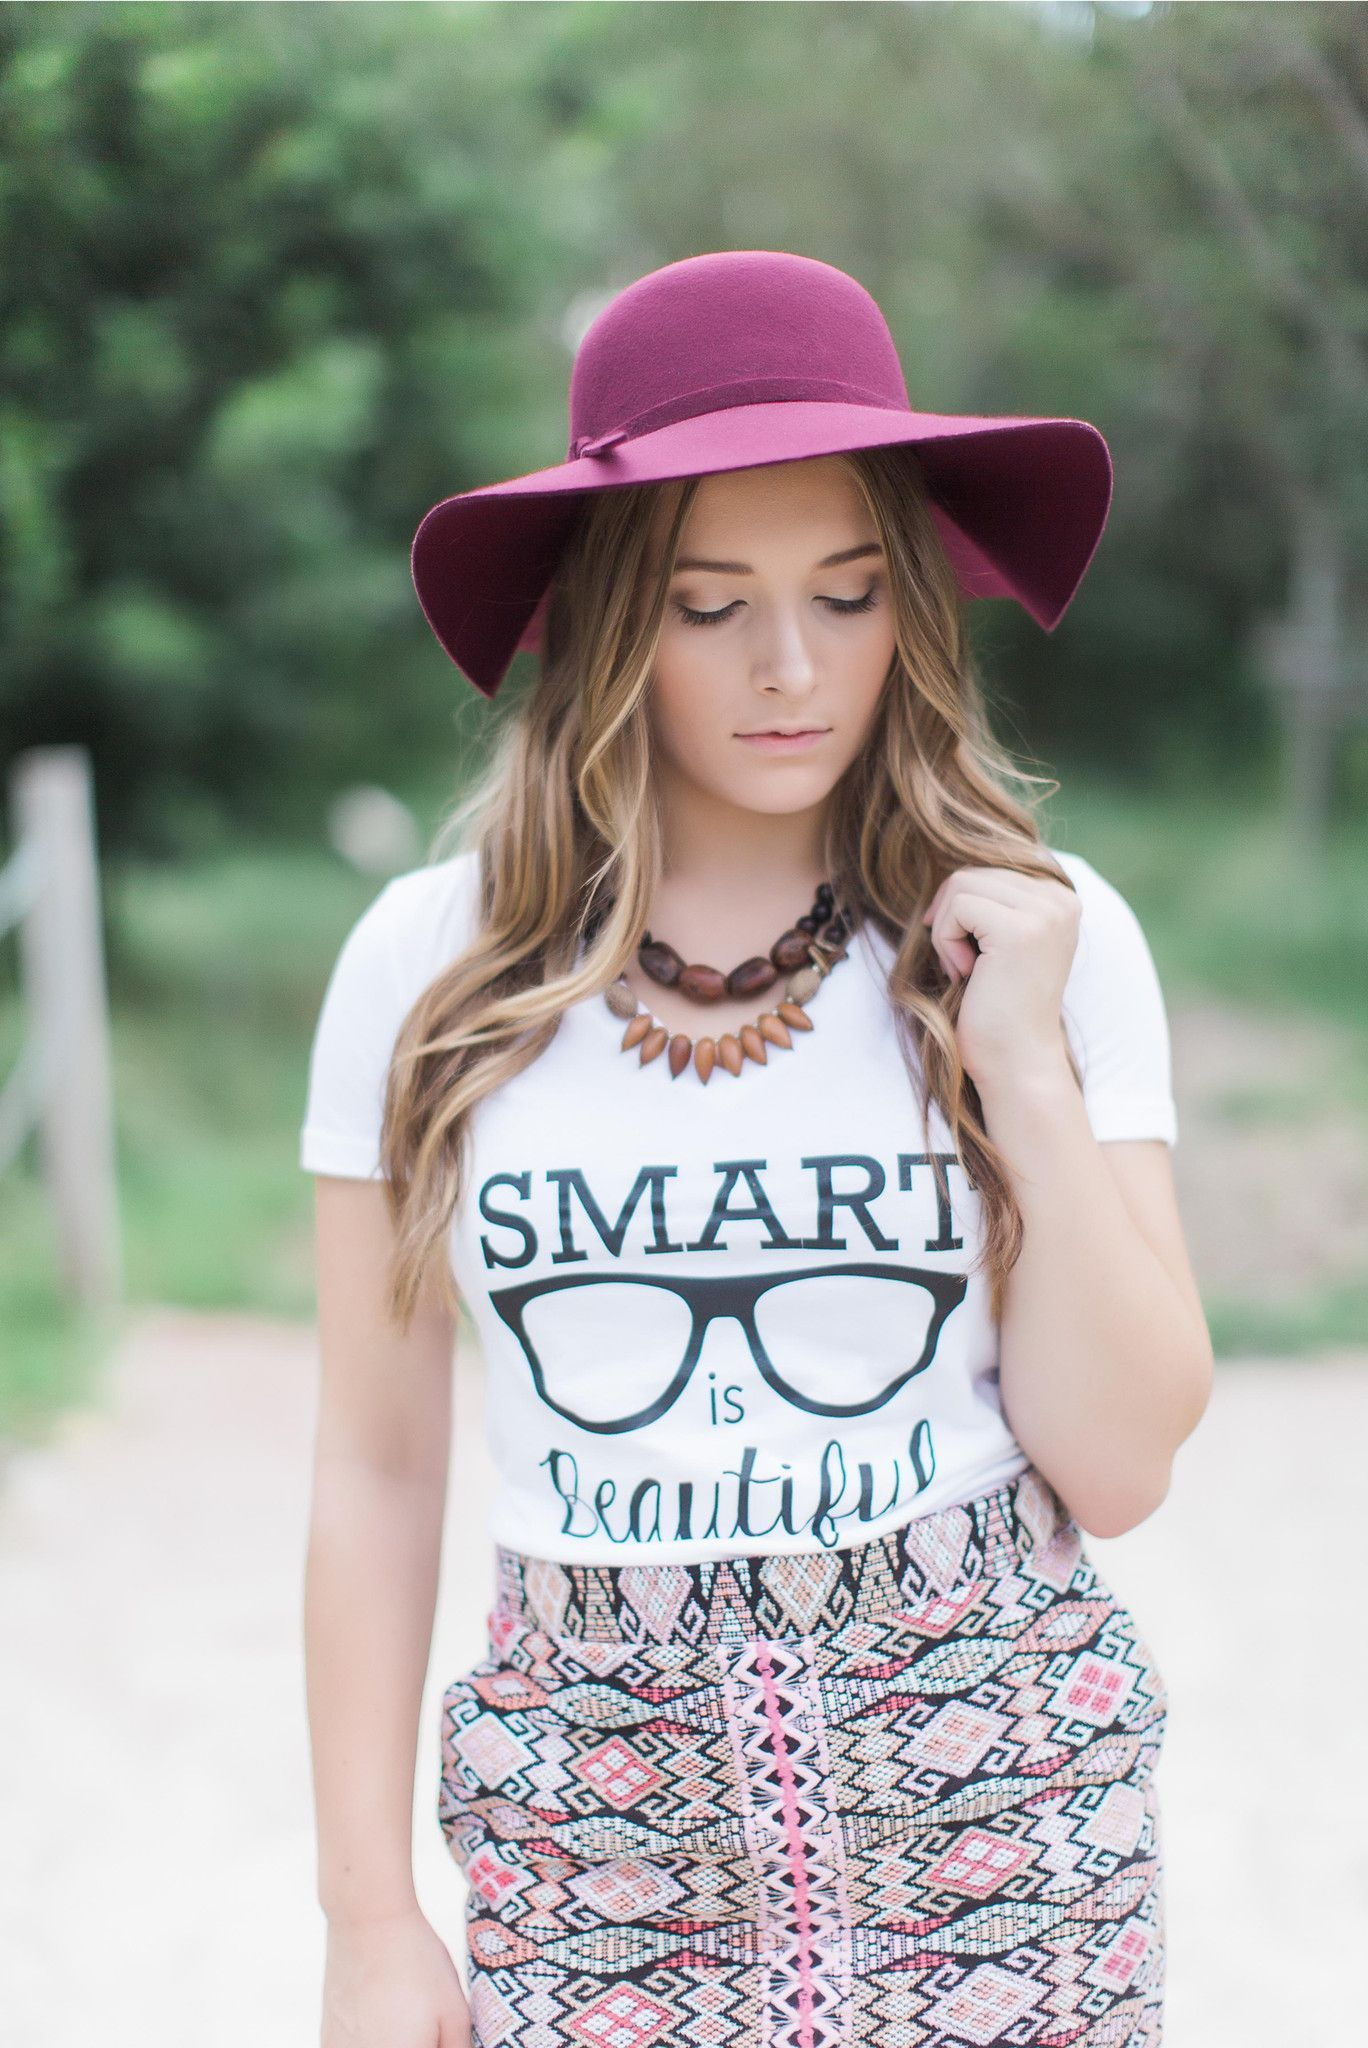 Smart Is Beautiful Nerd Girl V Neck Tee From 4 All Humanity